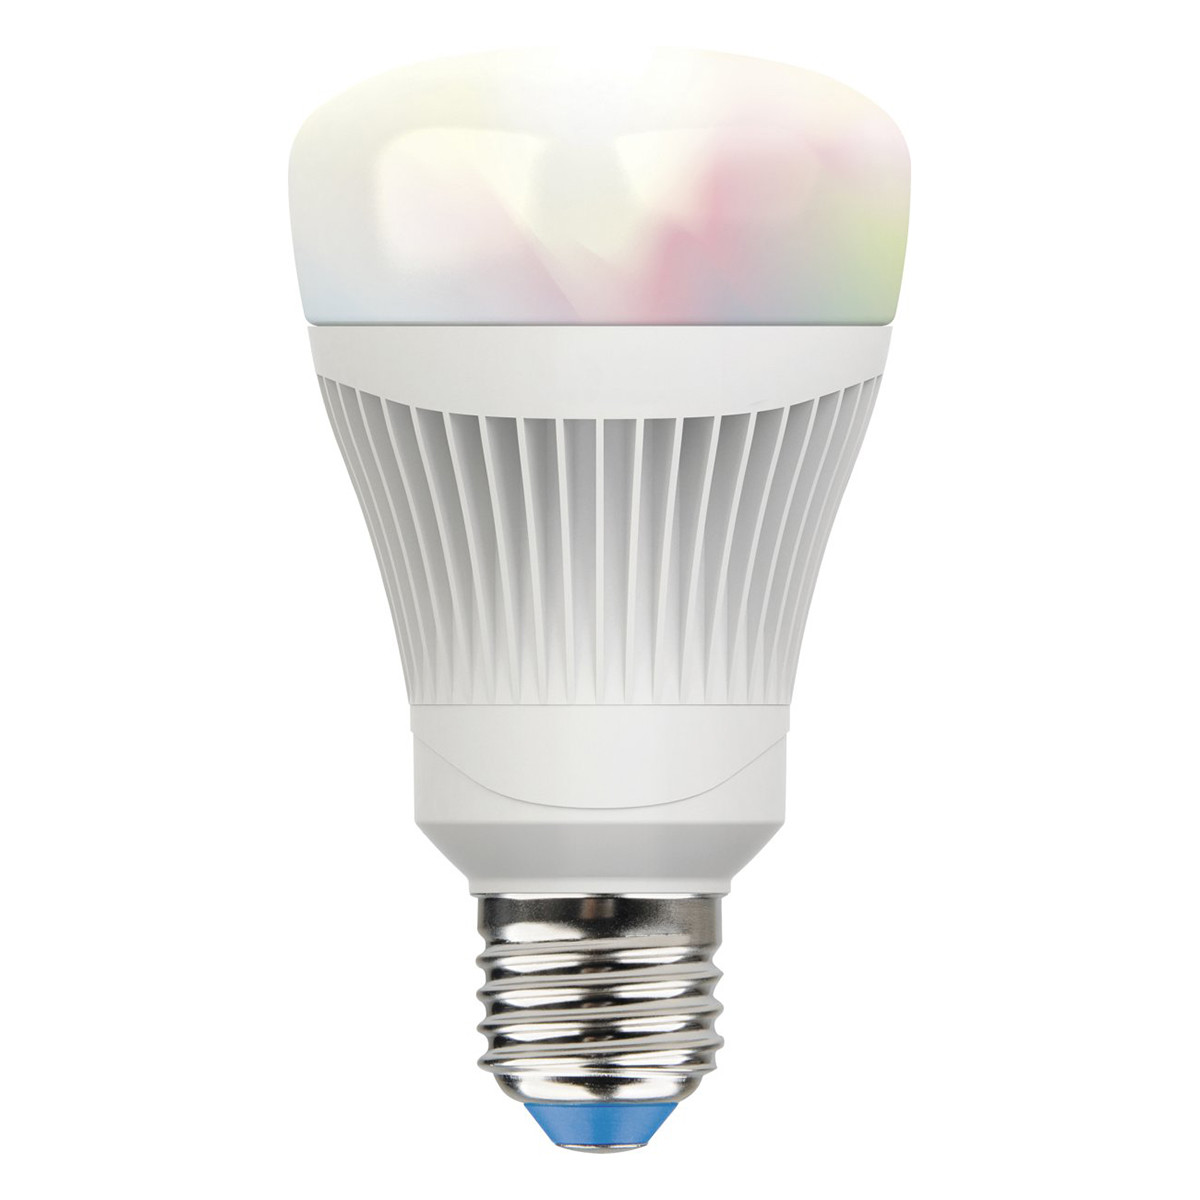 LED Lamp WiZ RGB - Trion - E27 Fitting - 11W Dimbaar - Slimme LED - Wifi LED - Smart LED met Afstand